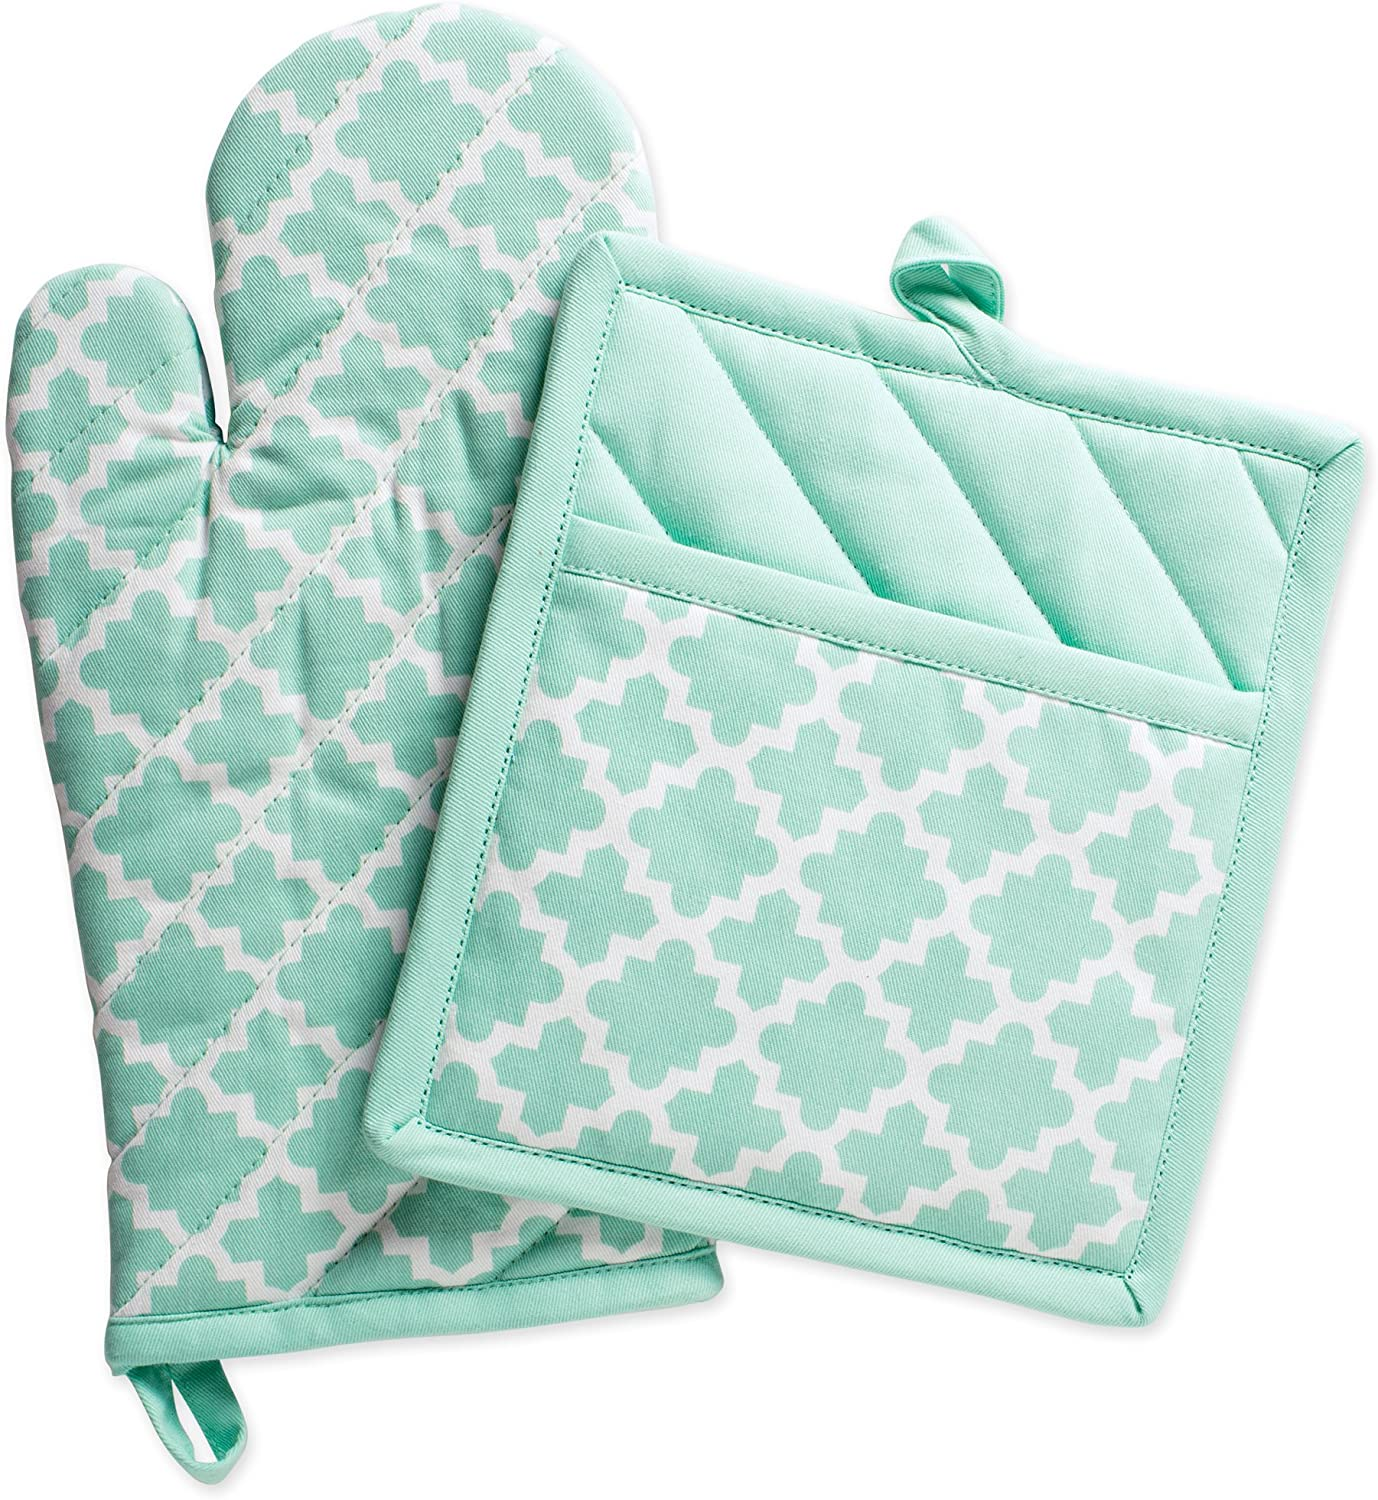 """DII Cotton Lattice Oven Mitt 13 x 7"""" andPot Holder 9 x 8"""" Kitchen Gift Set, Machine Washable and Heat Resistant for Cooking & Baking-Aqua"""